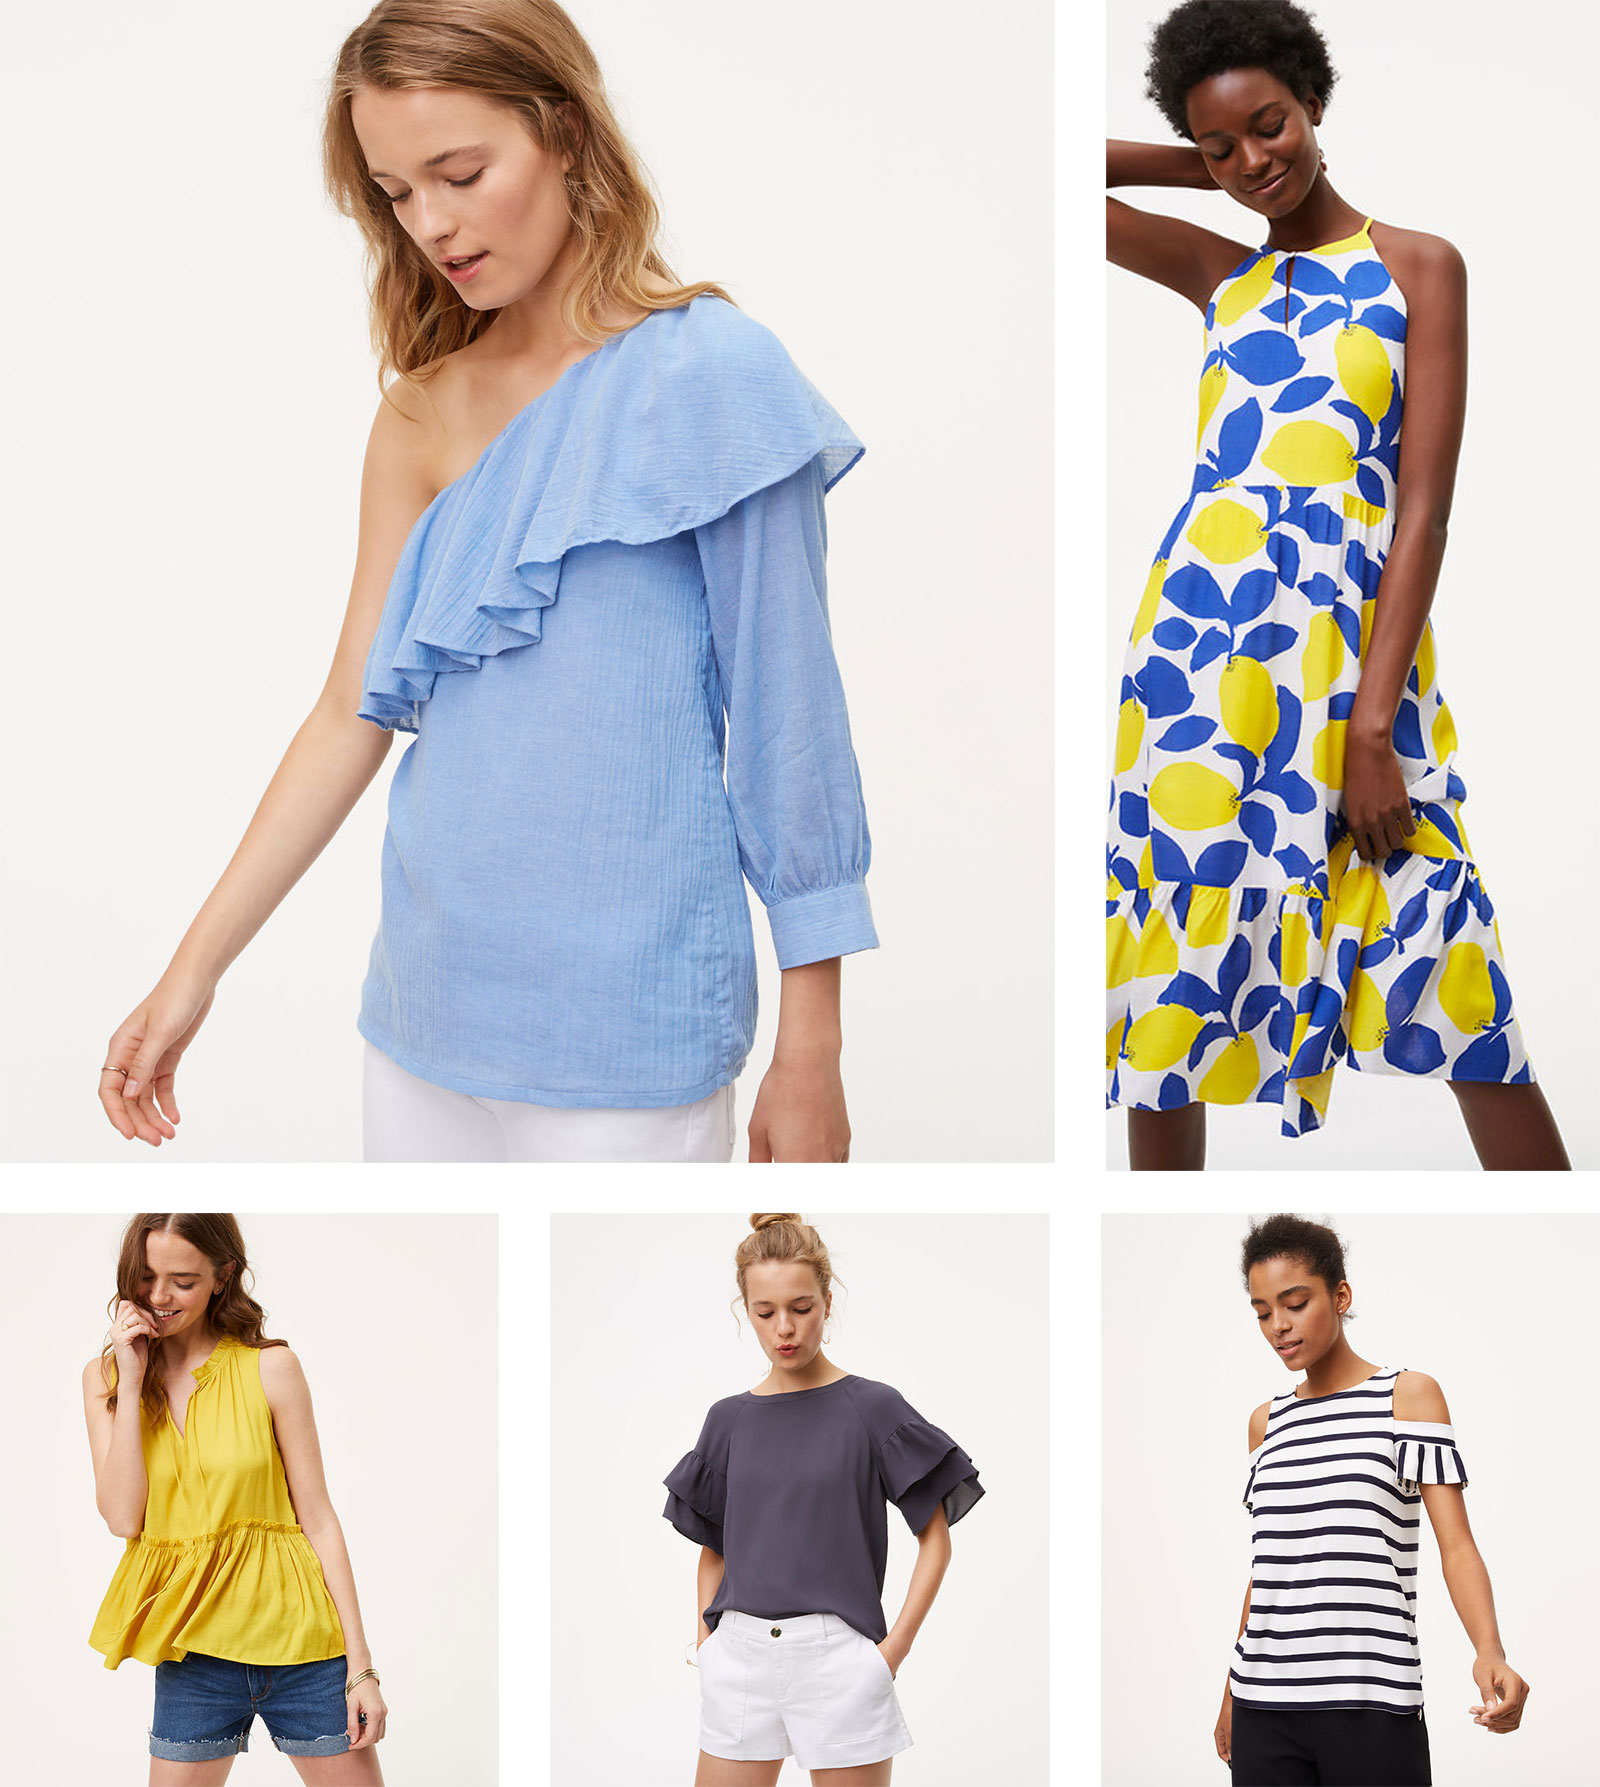 LOFT Summer Flash sale picks